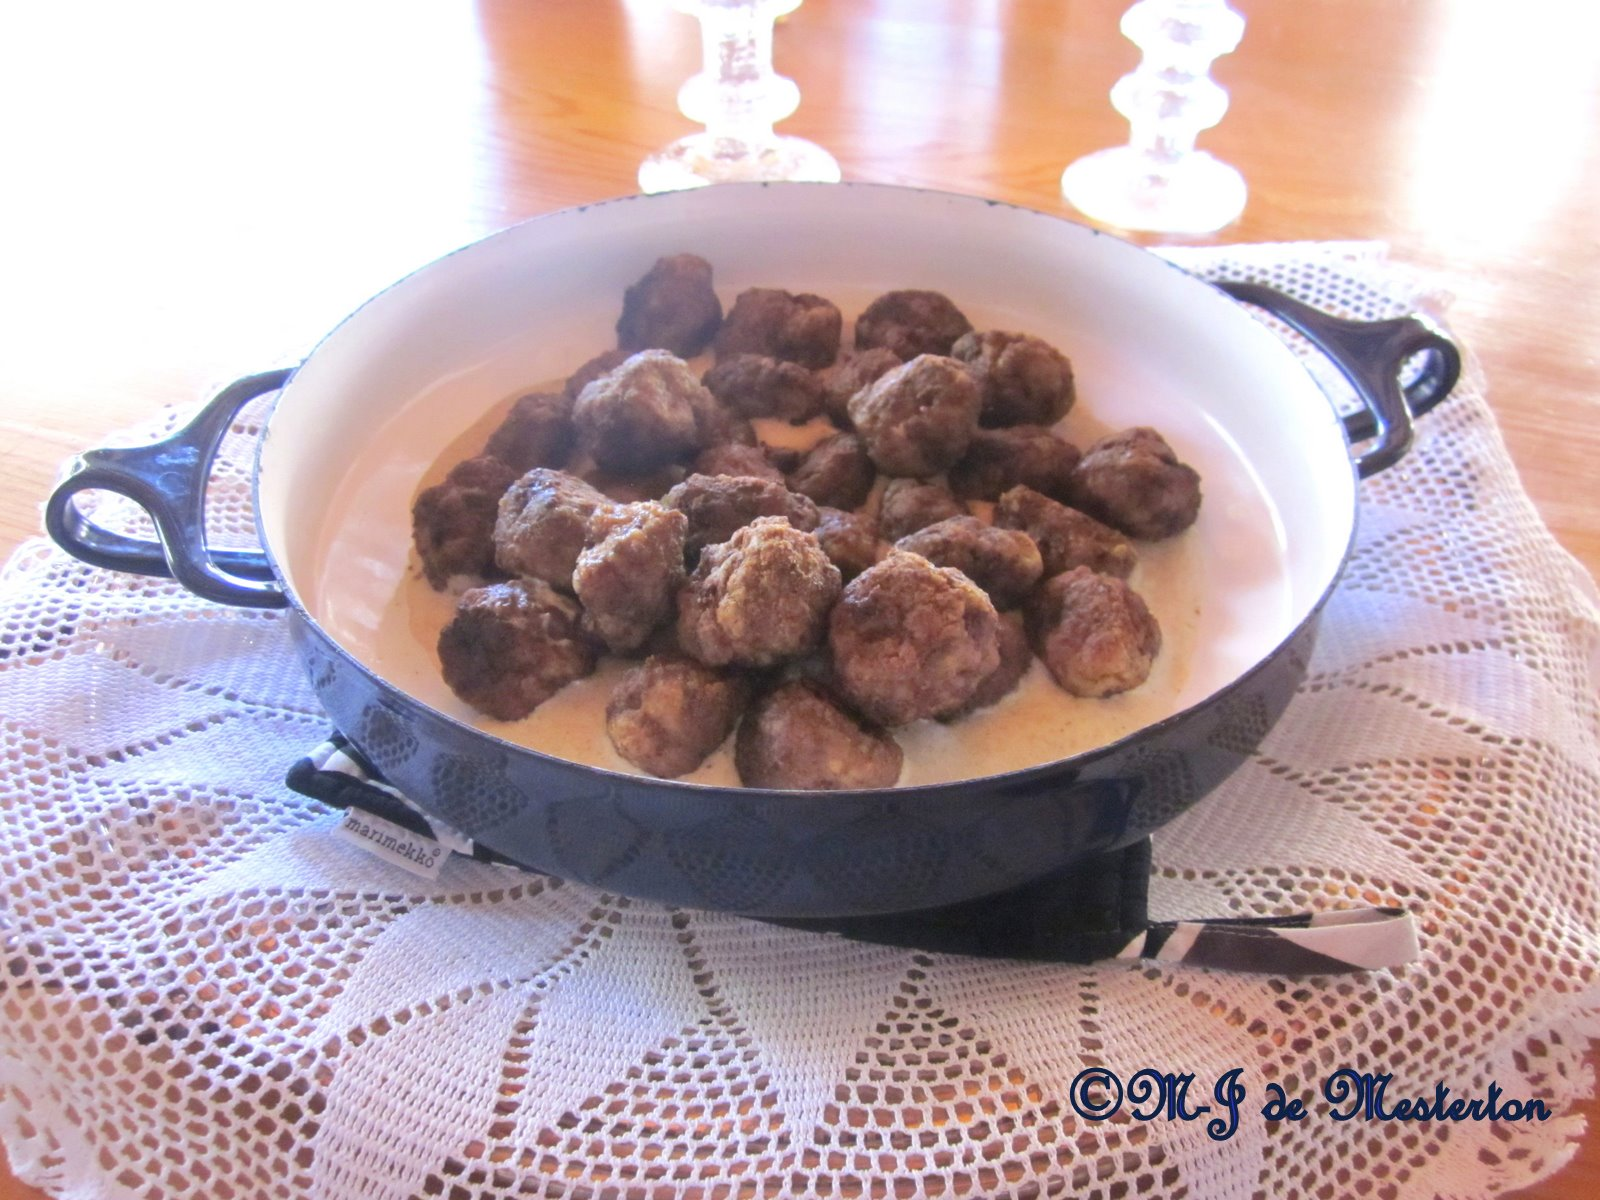 Economical Cooking: Swedish Meatballs